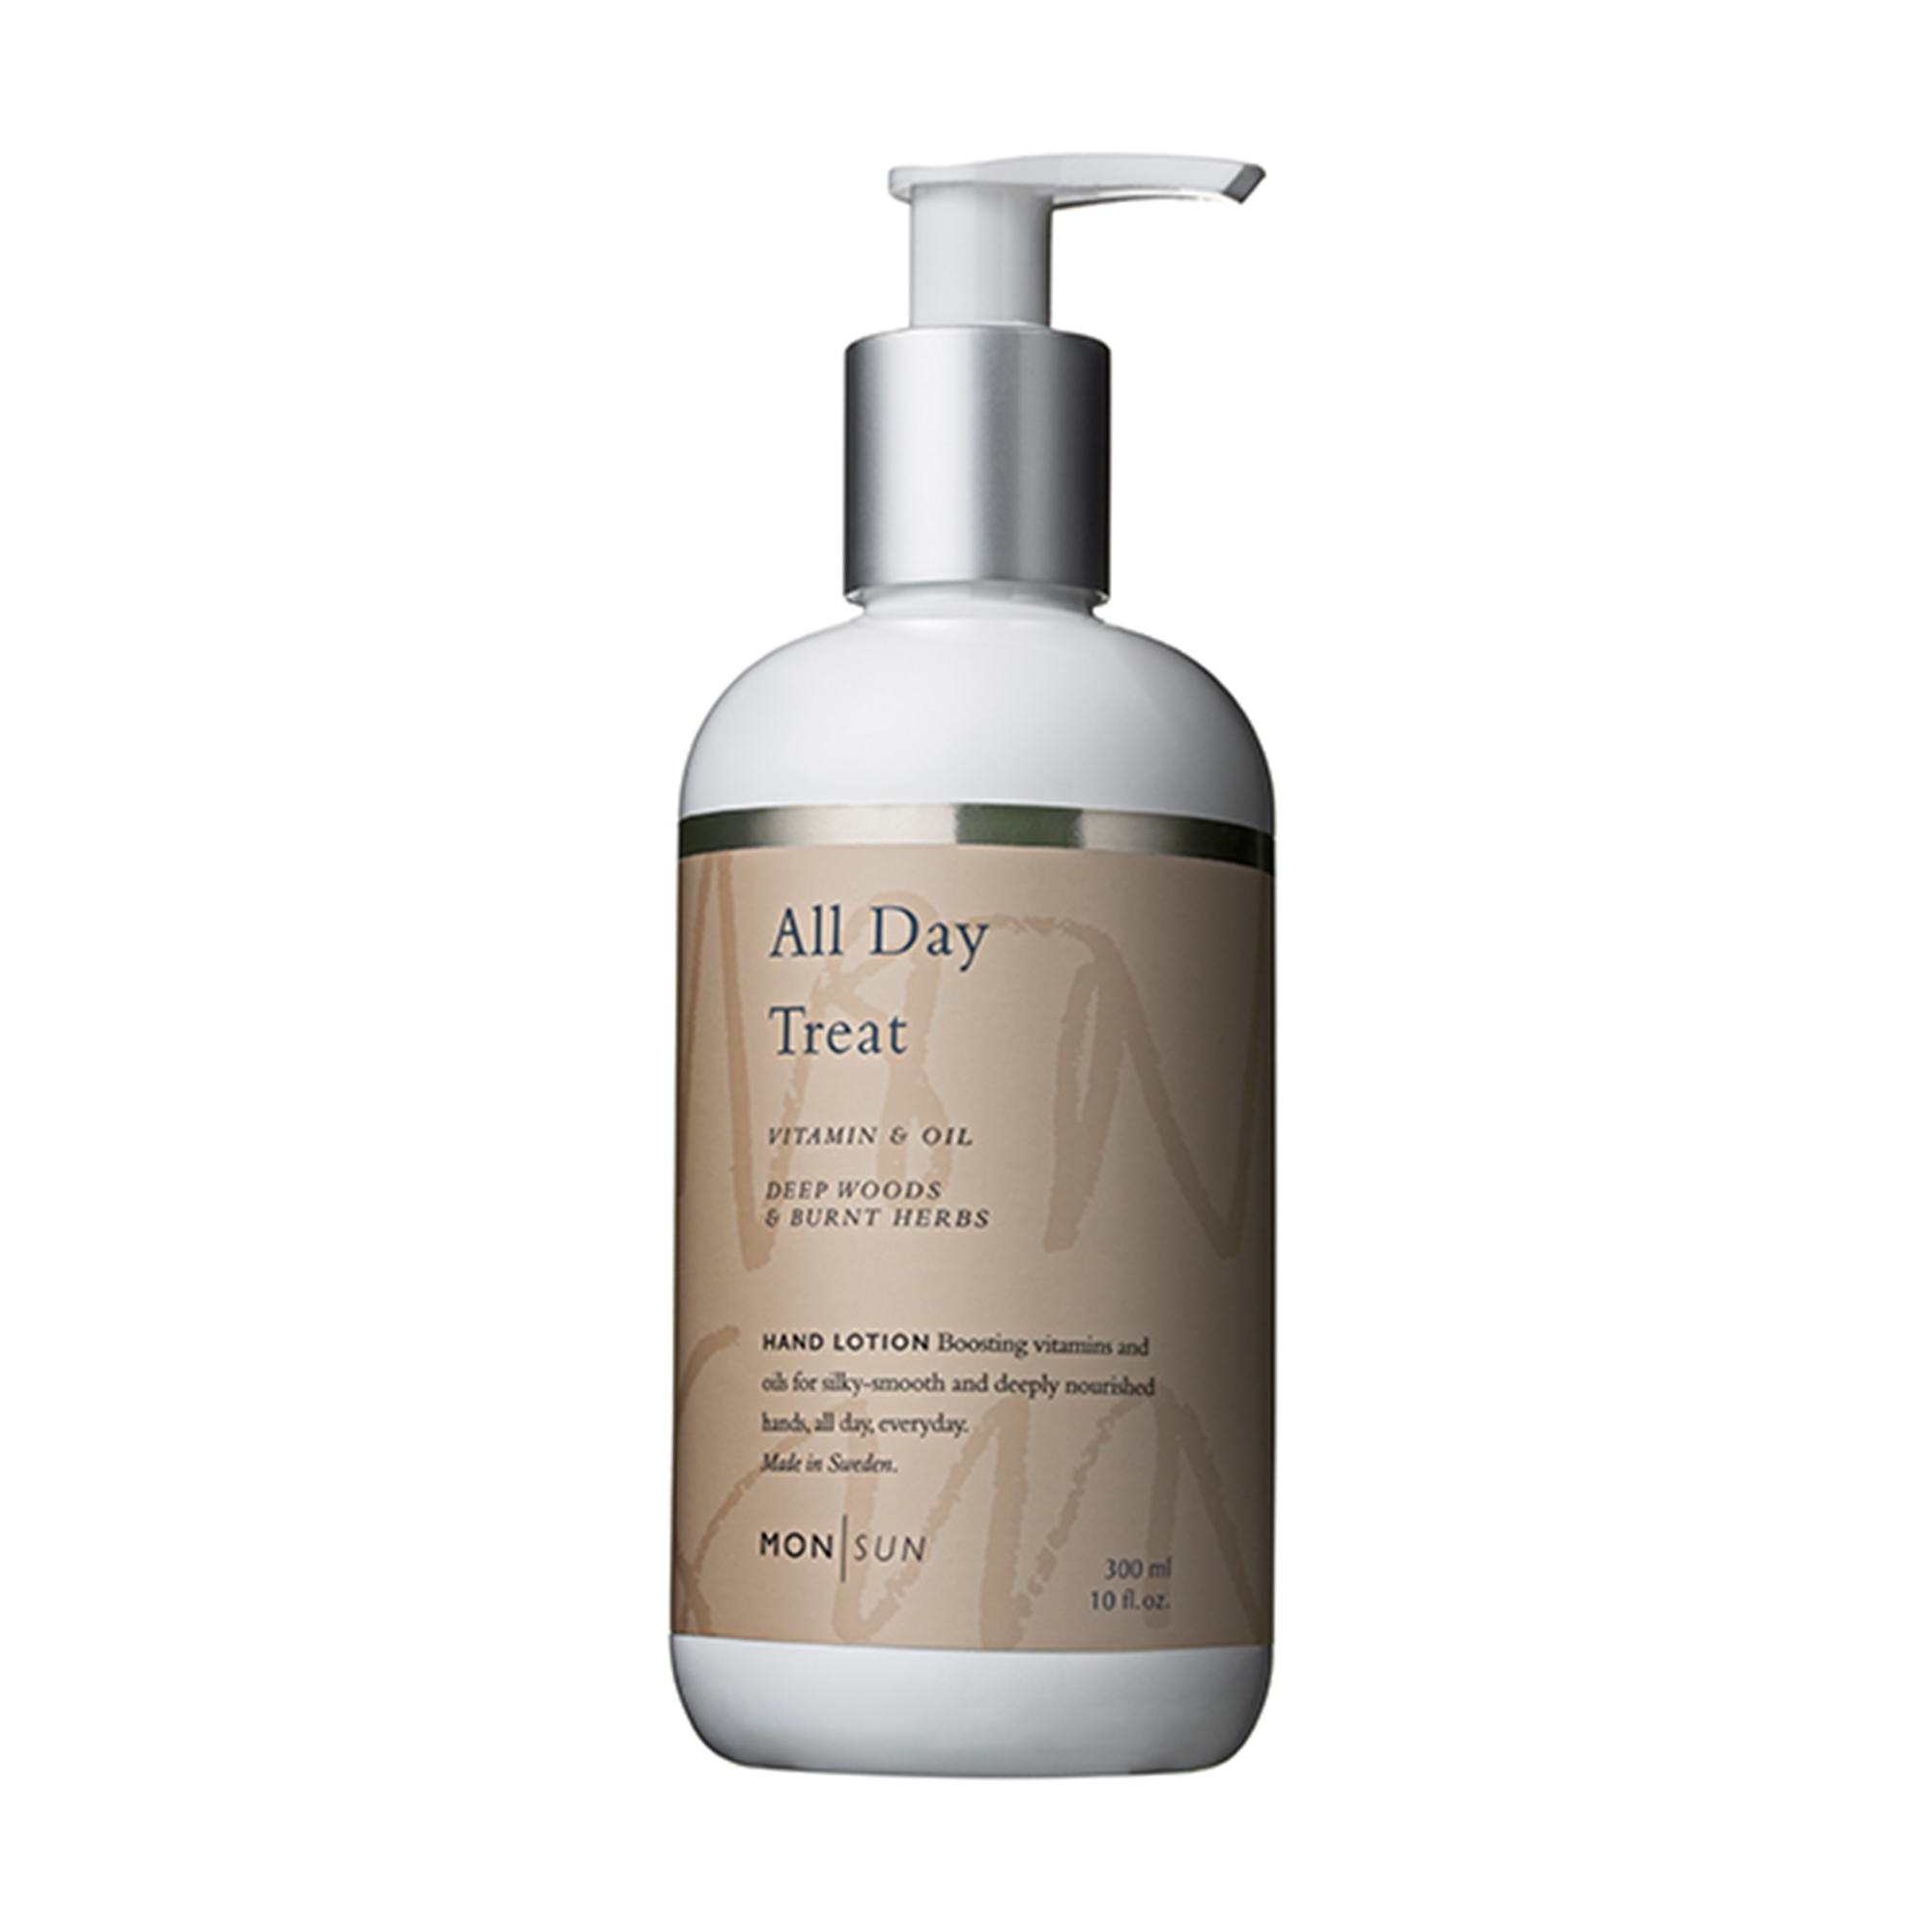 All Day Treat Vitamin & Oil Hand Lotion